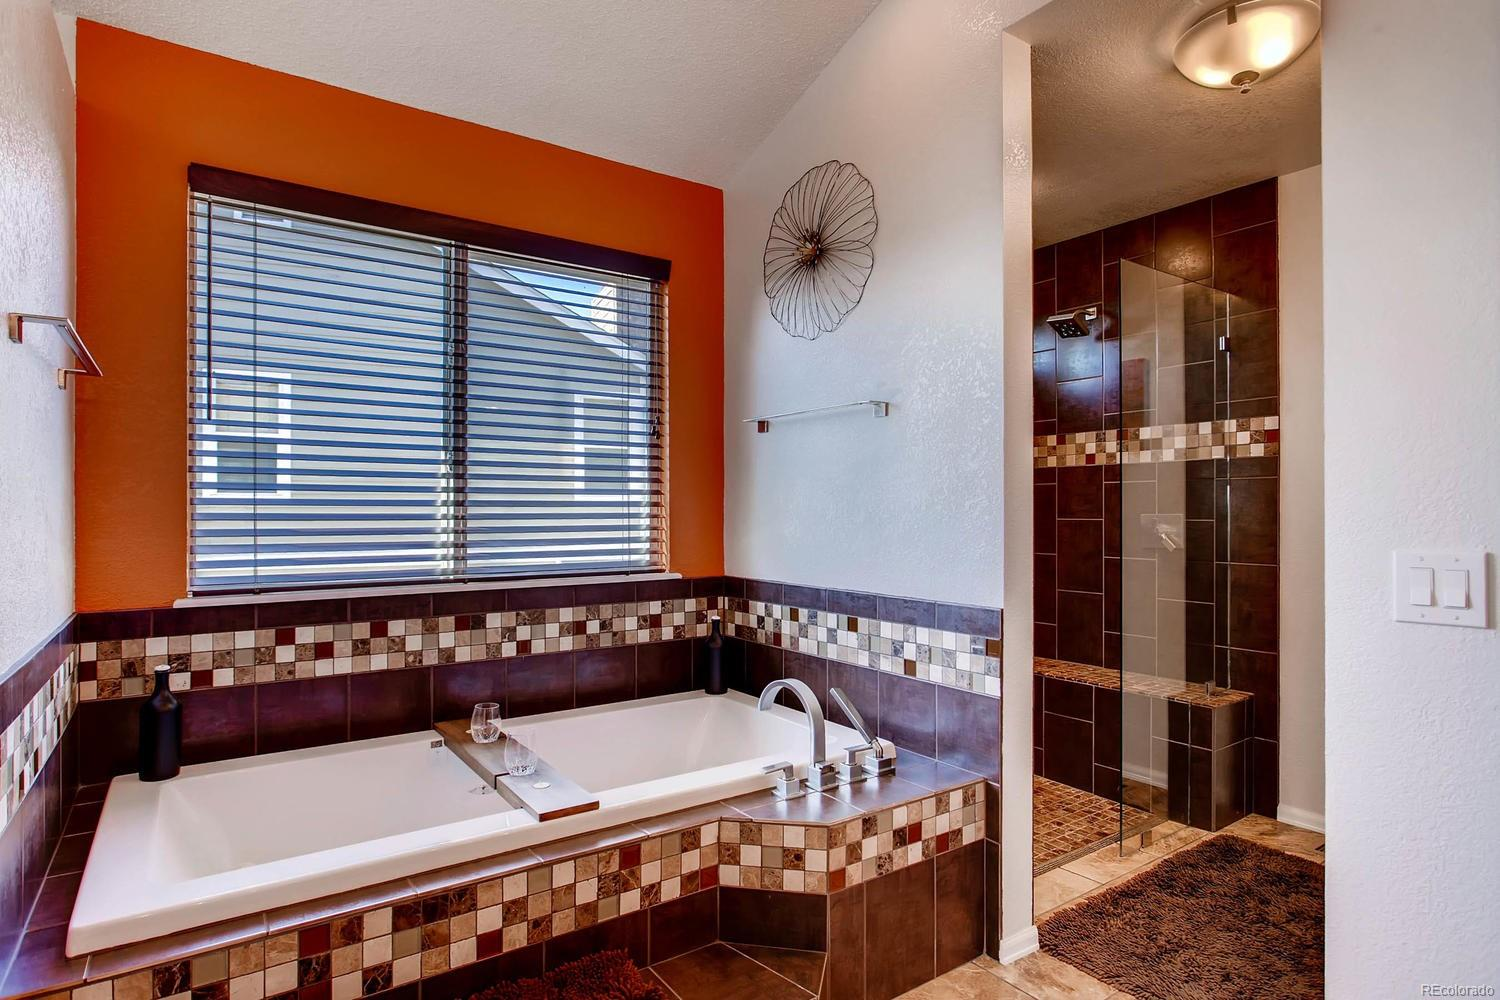 Heated soaking tub - extra large - relax and unwind